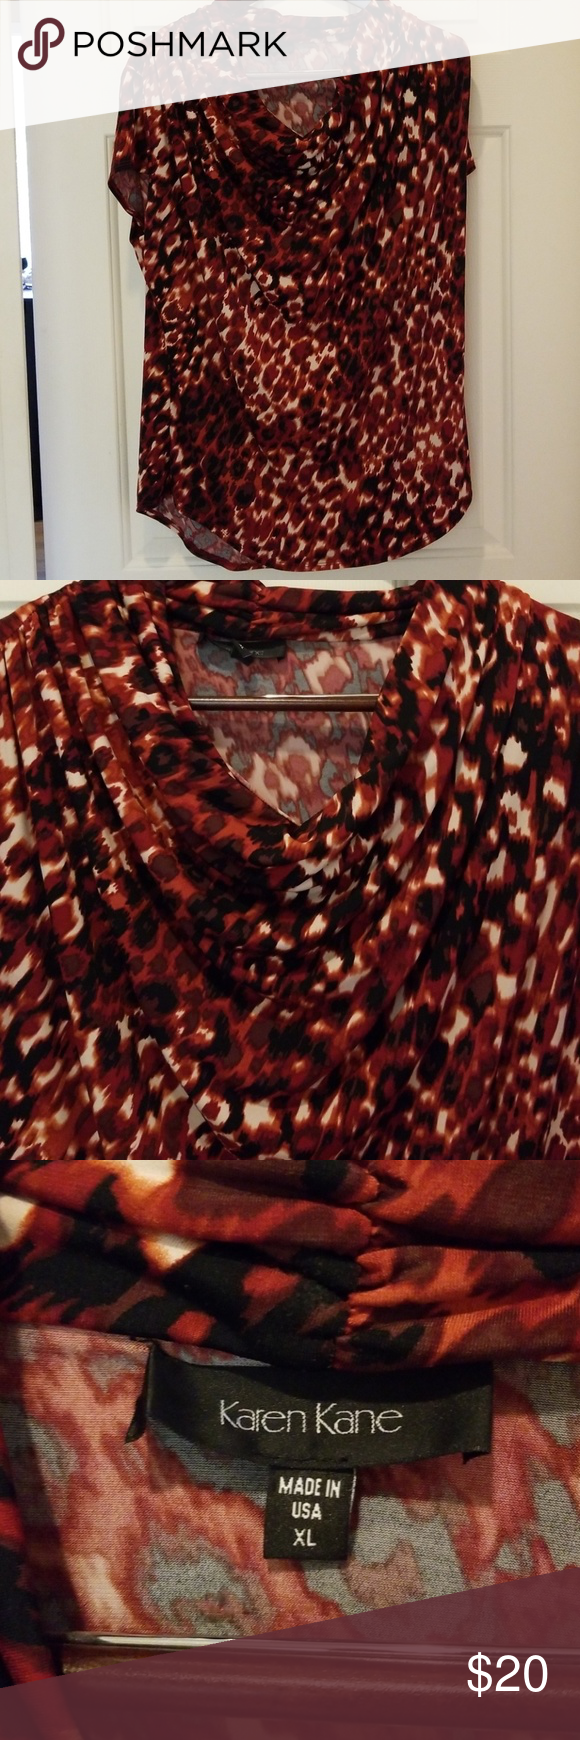 "~KAREN KANE~Lovely Short Sleeve Top Shirt Blouse This is a great top by Karen Kane that was worn once.  It is a size XL and is 26"" long.  It is has a gorgeous pattern of burnt reds, browns, blacks, and ivory.  It has a cowl neckline and is gorgeous. Karen Kane Tops Blouses"